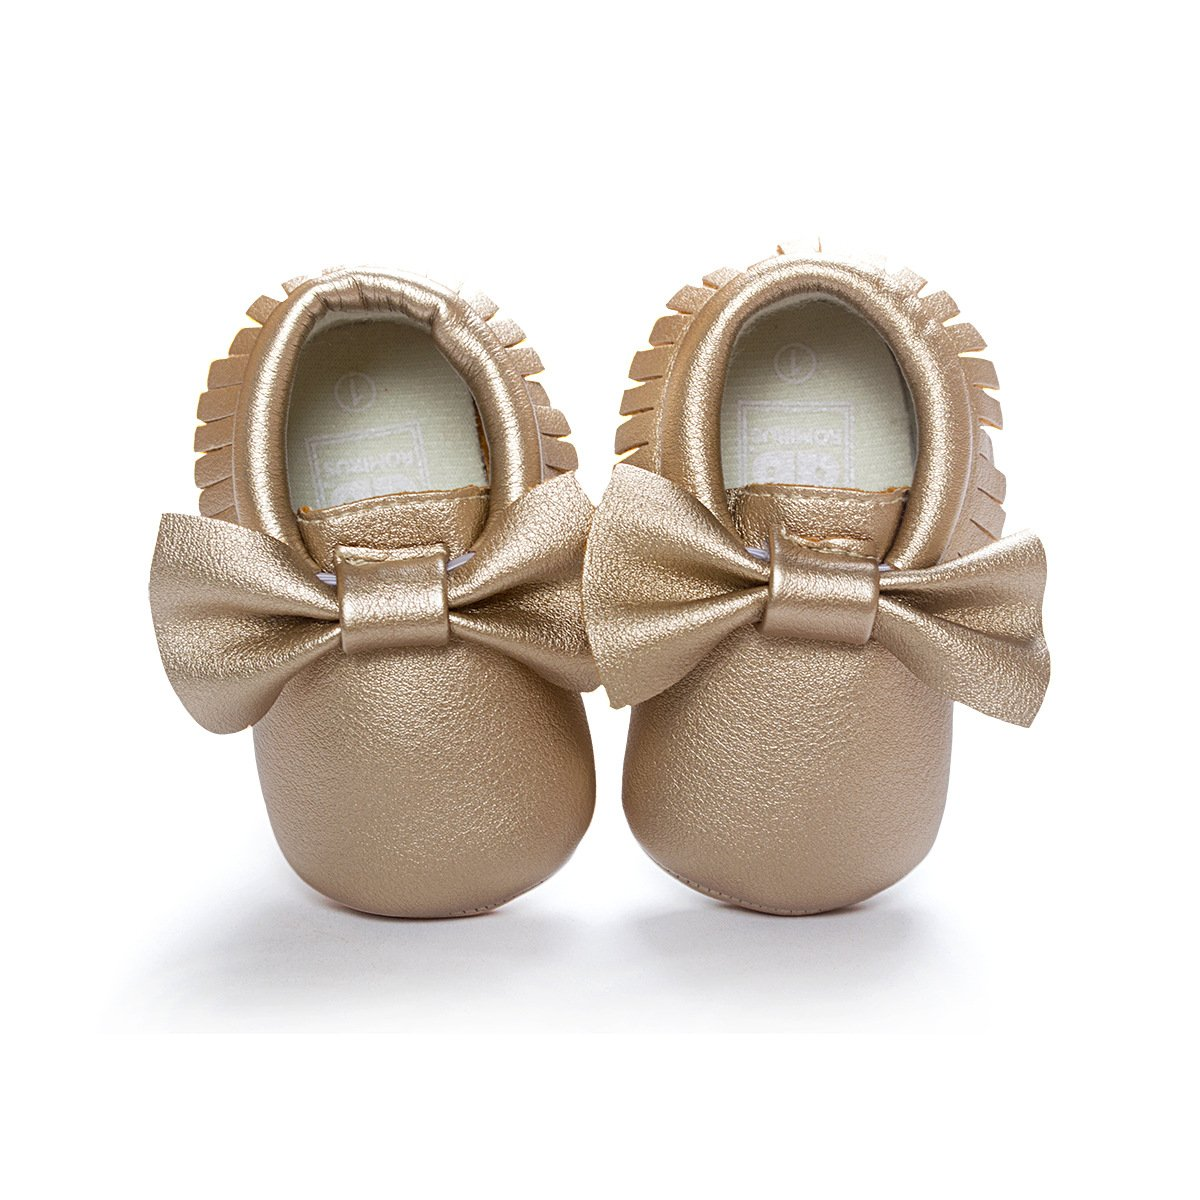 C&H Baby boy girl soft cute tassel bow tassels baby cot shoes baby shoes (11cm(0-6months), 5107 golden) by C&H (Image #5)